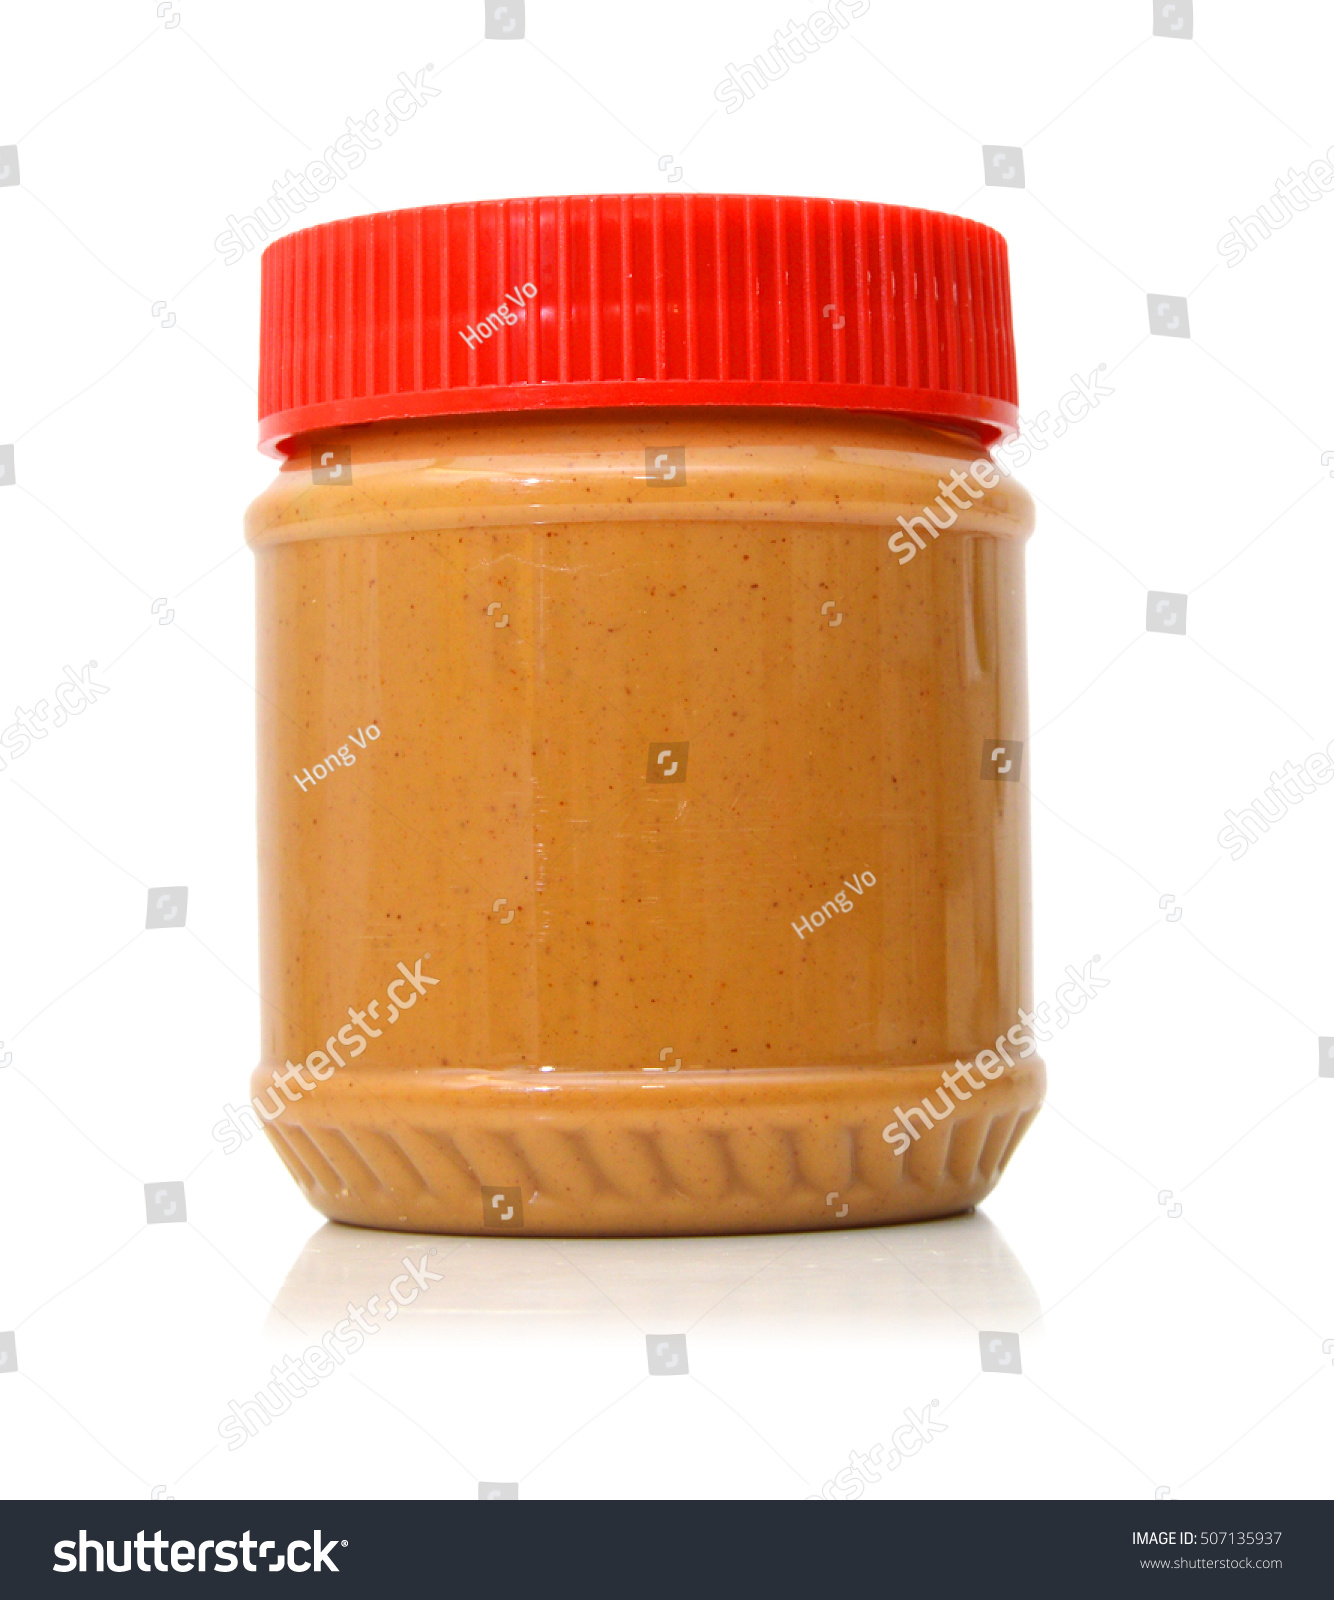 the history and background of peanut butter There are many claims about the origin of peanut butter africans ground peanuts into stews as early as the 15th century the chinese have crushed peanuts into creamy sauces for centuries.